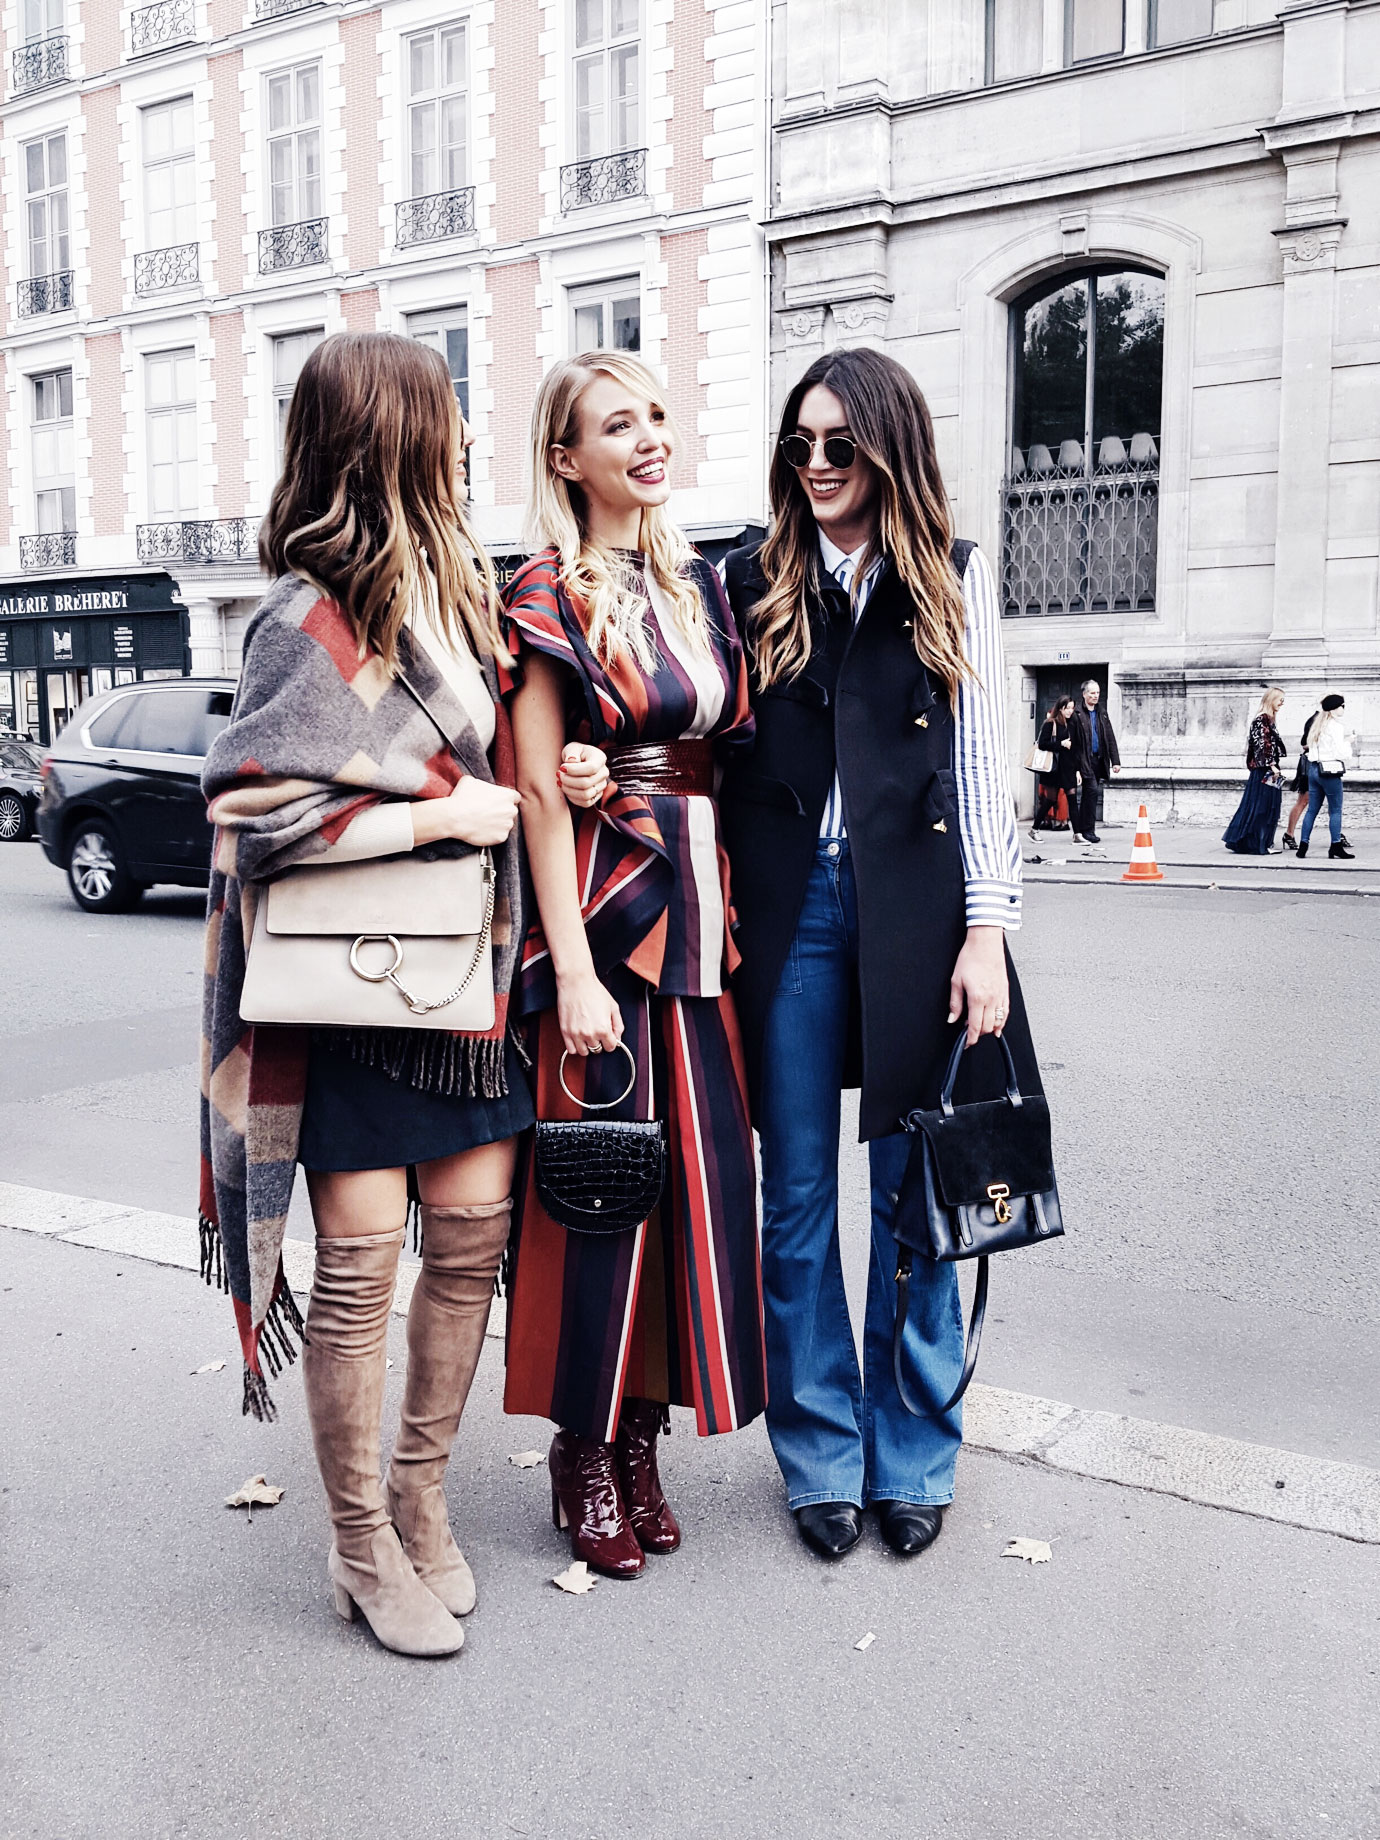 How to boost your fashion blog earnings during fashion week